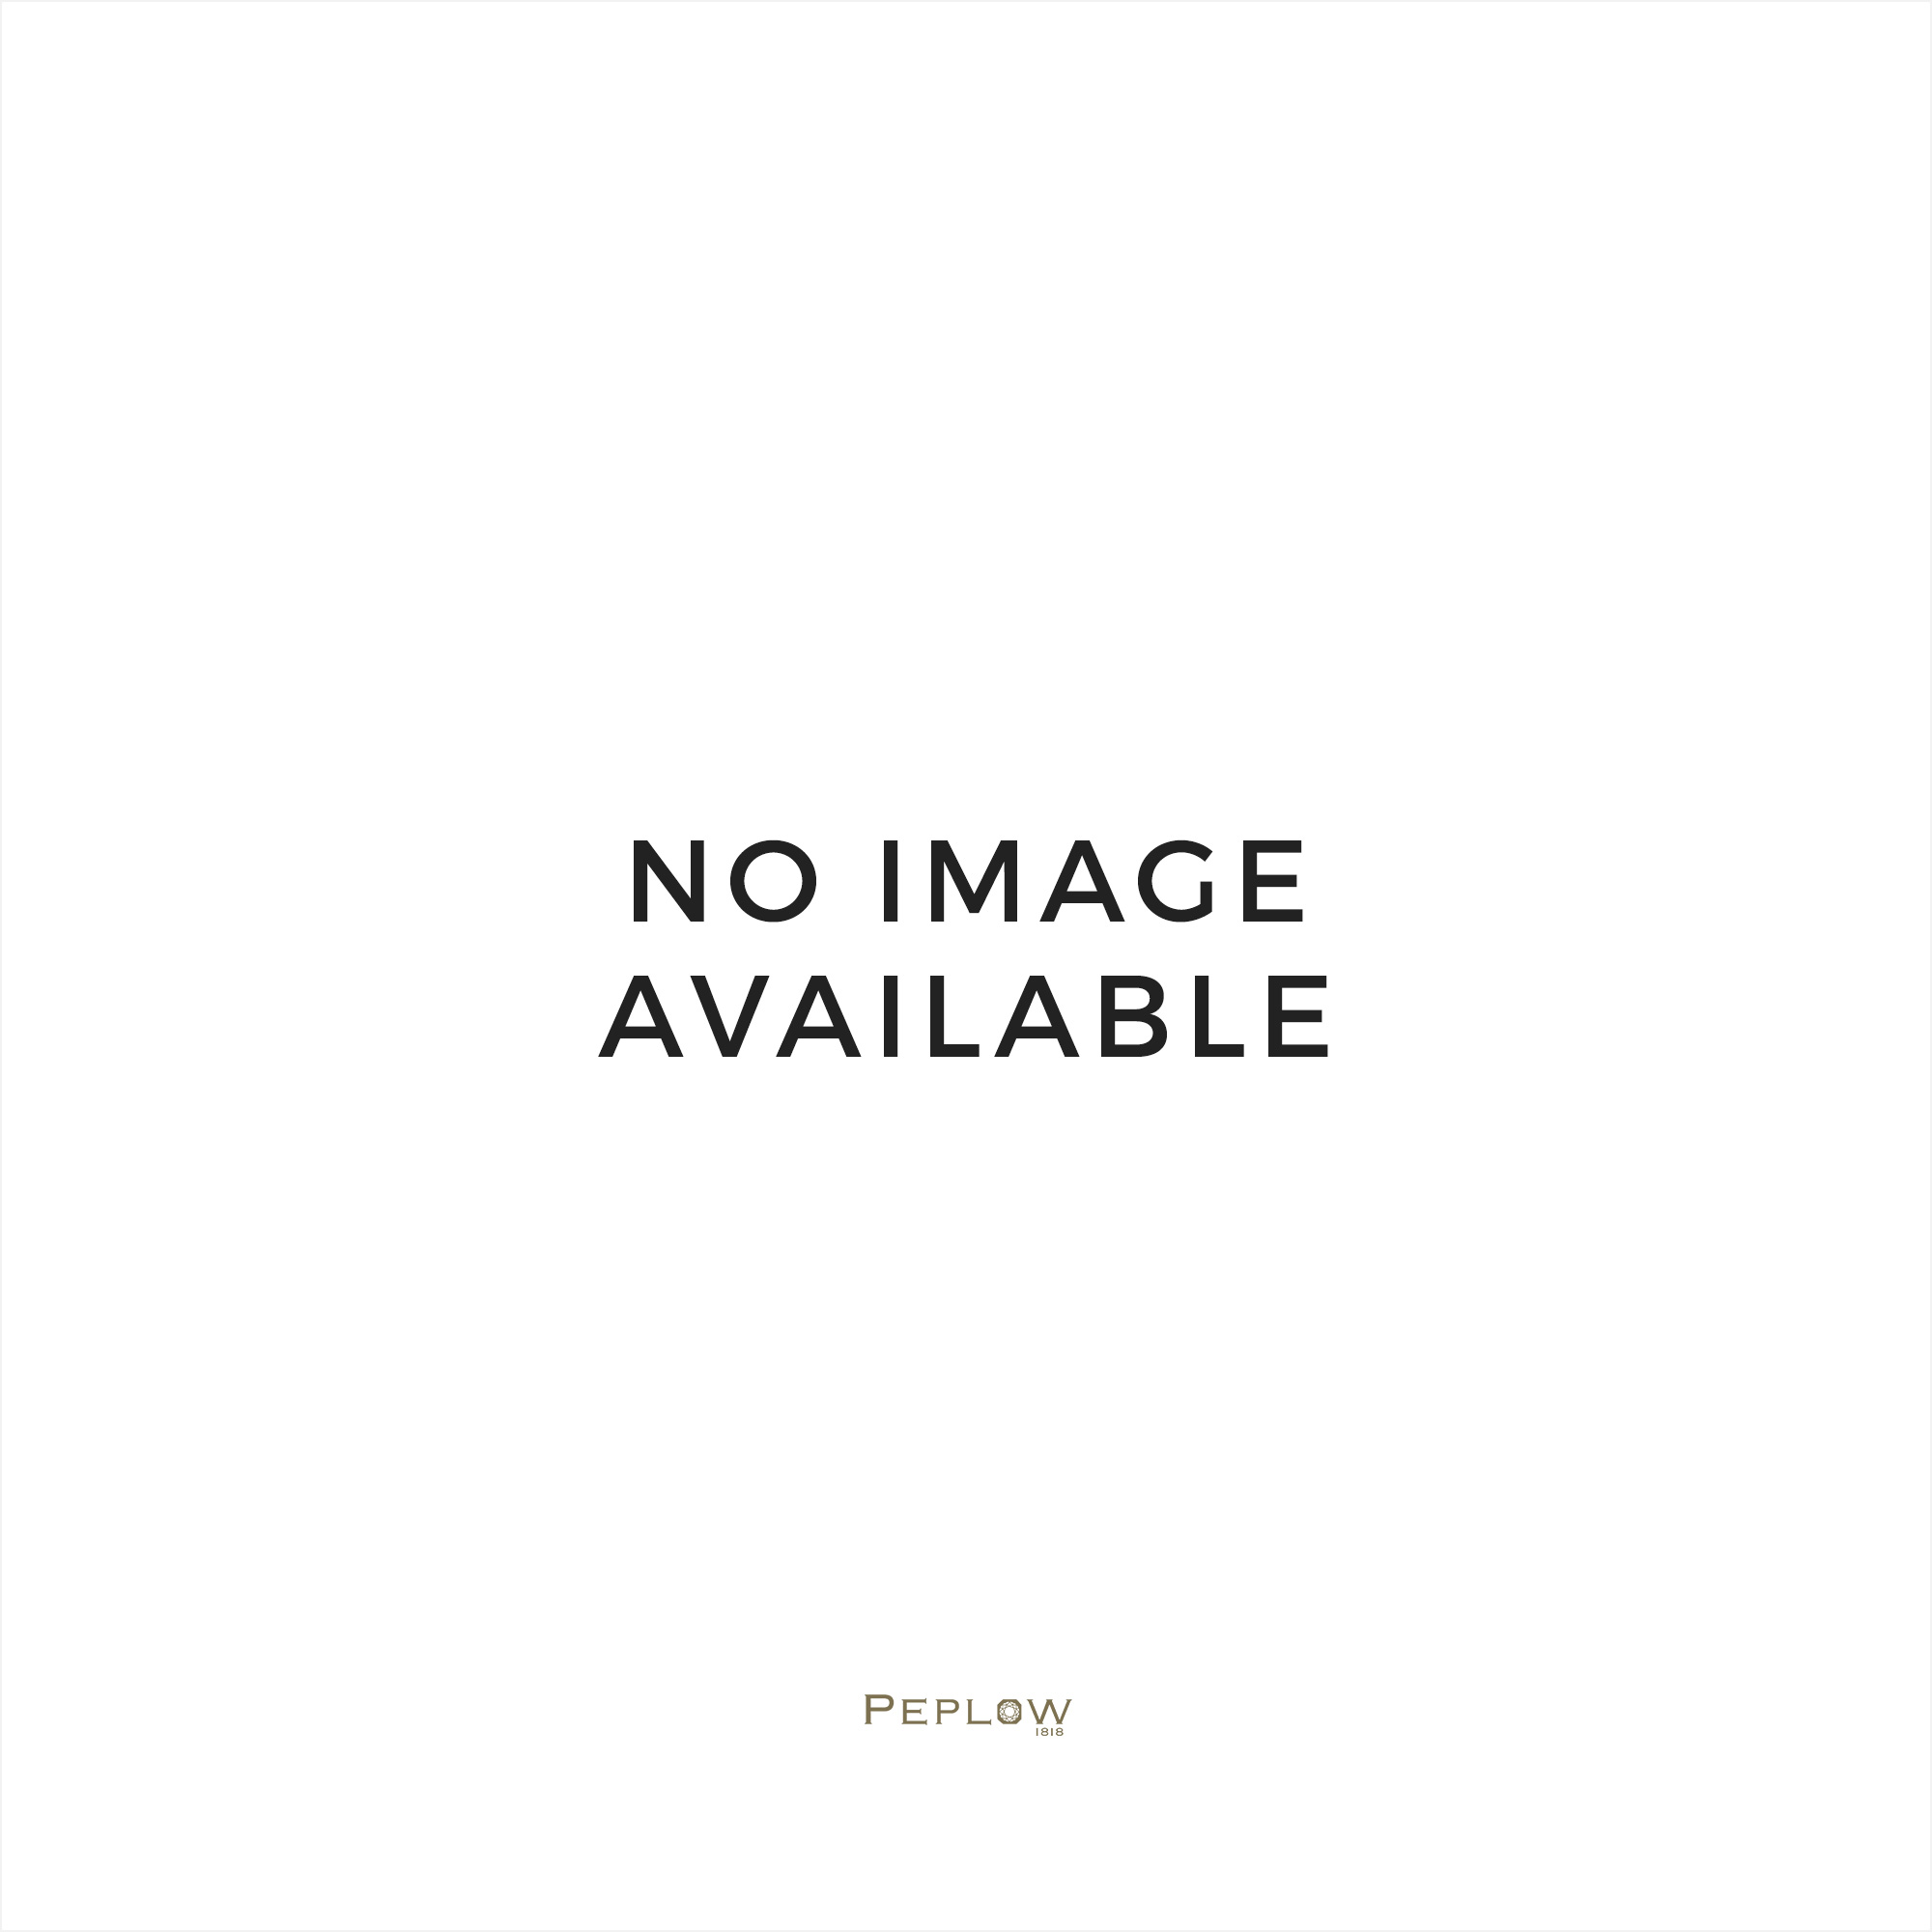 Kamawatch Millenium Grey/black vintage wristwatch